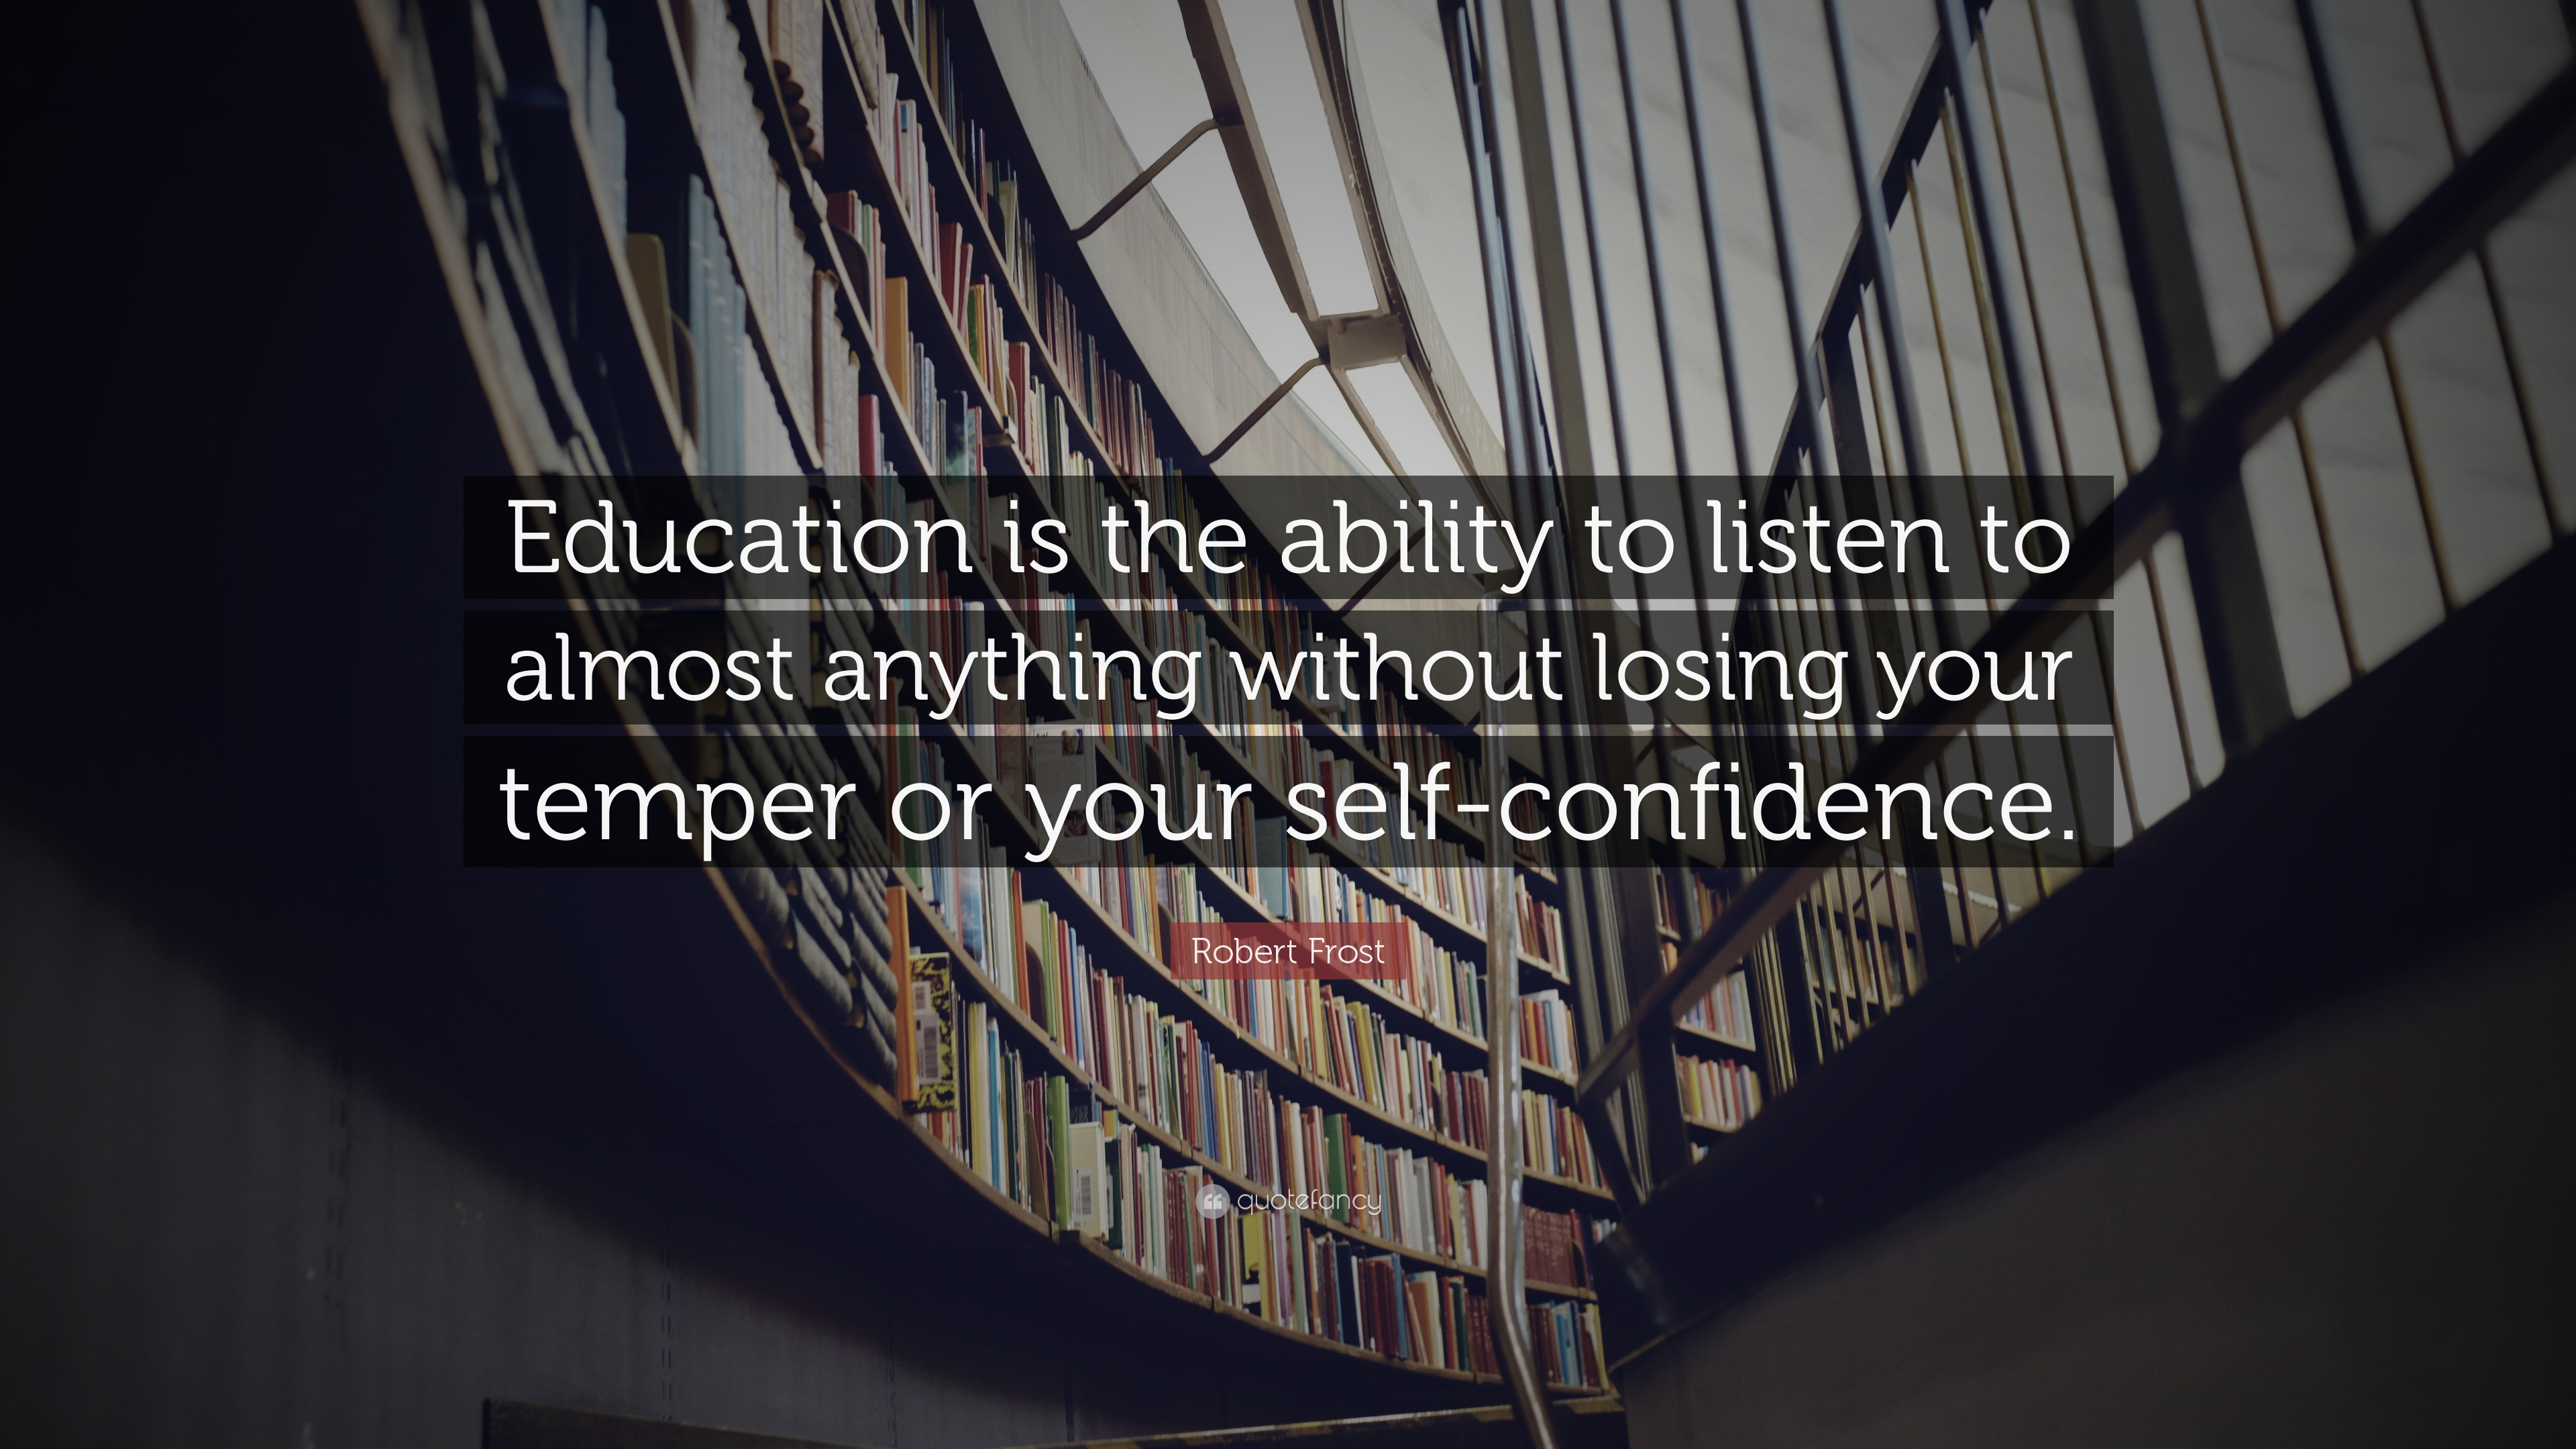 Robert Frost Education Quote Tumblr thumbnail